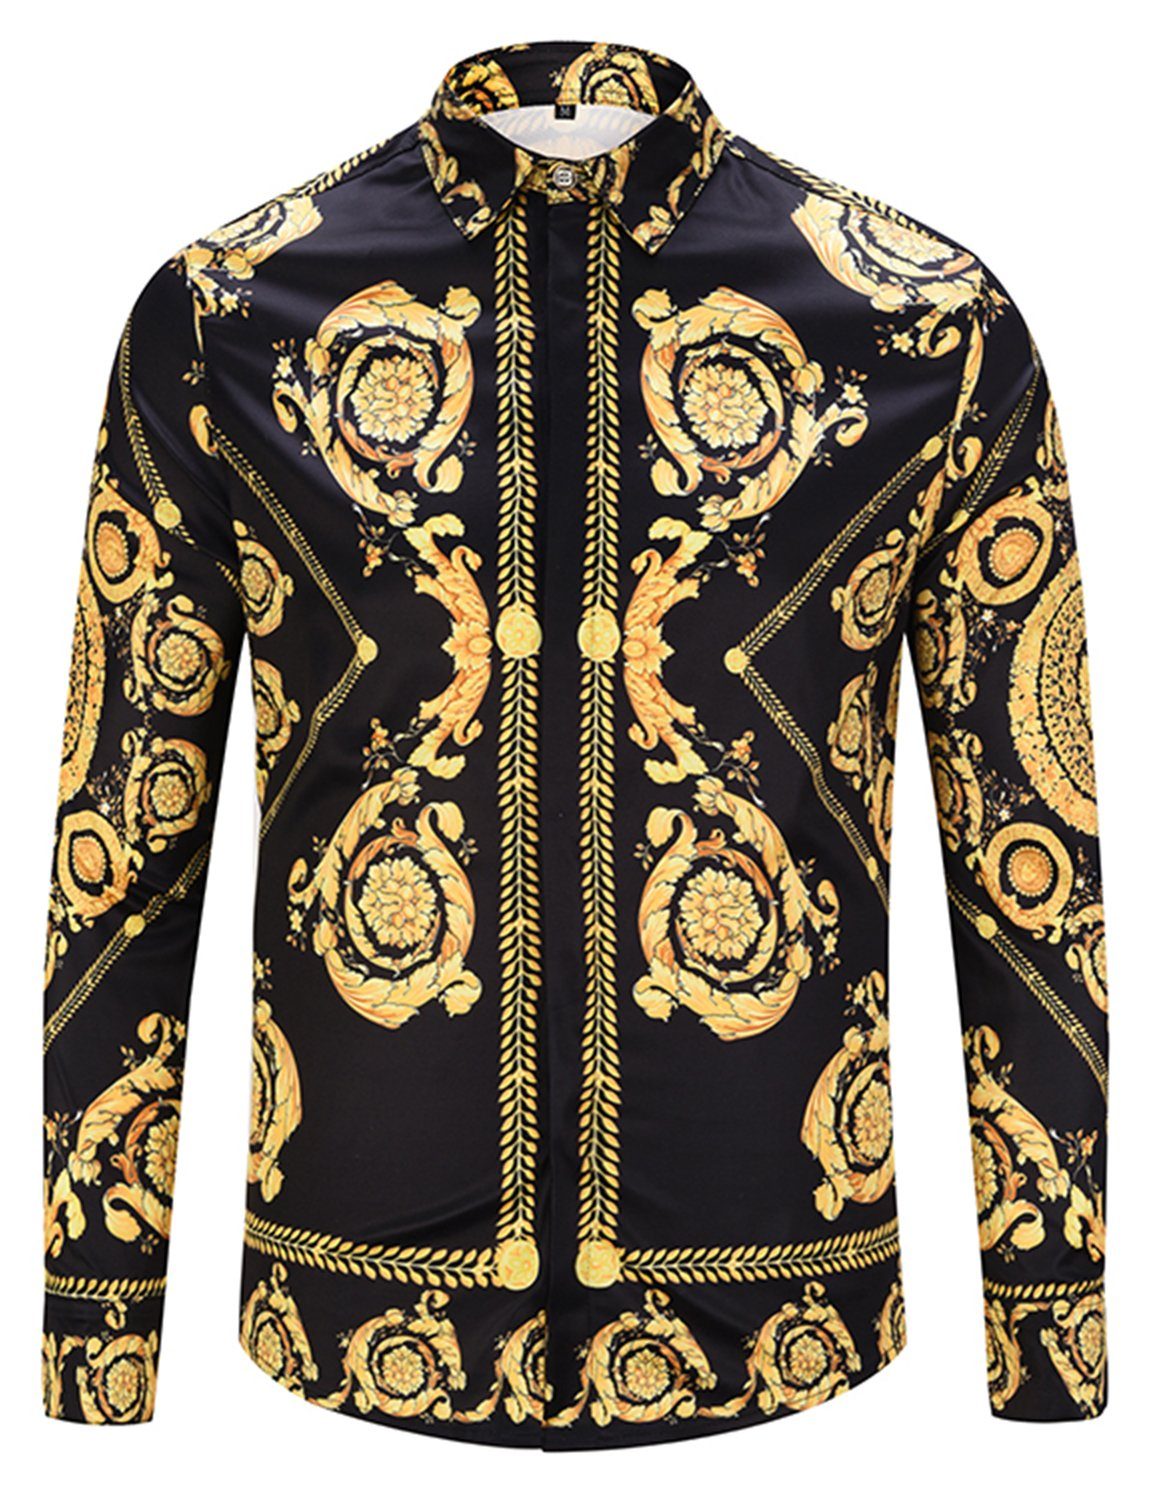 Pizoff Mens Hipster Casual Button Down Dress Shirt Long Sleeve Luxury Gold Print Designer for Party Night Club Y1792-57-L